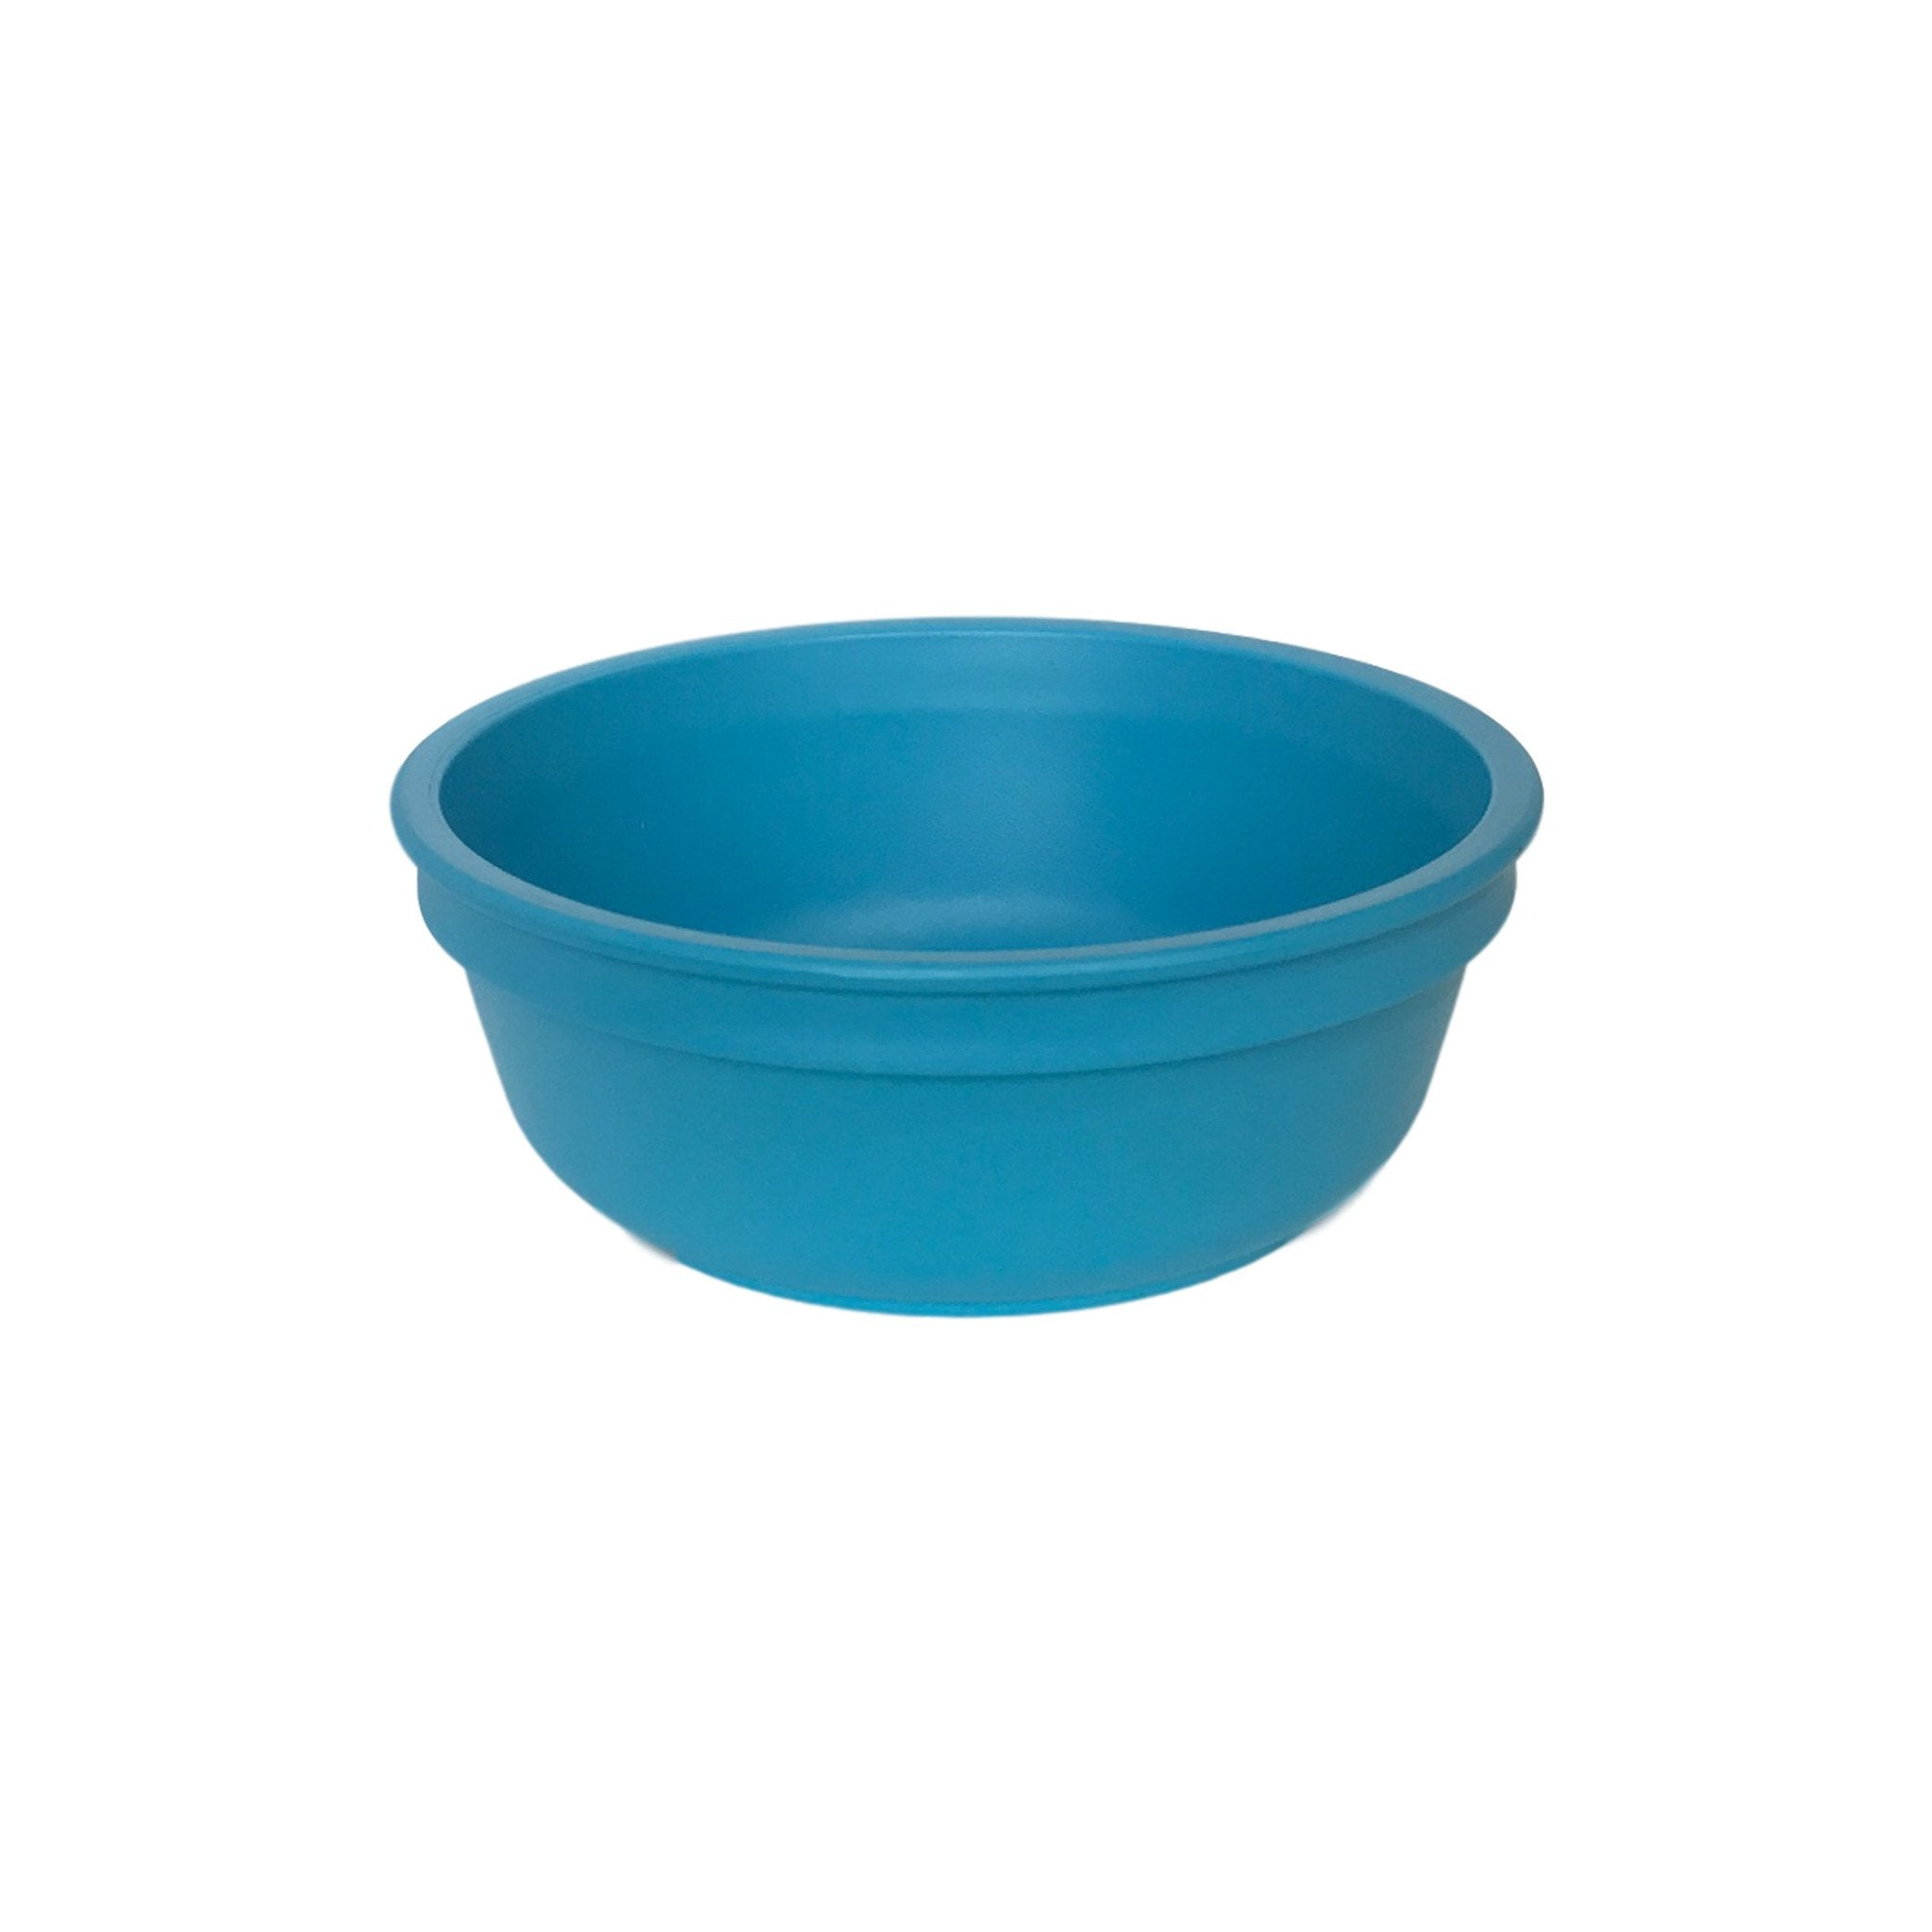 Replay Bowl Replay Lifestyle Sky Blue at Little Earth Nest Eco Shop